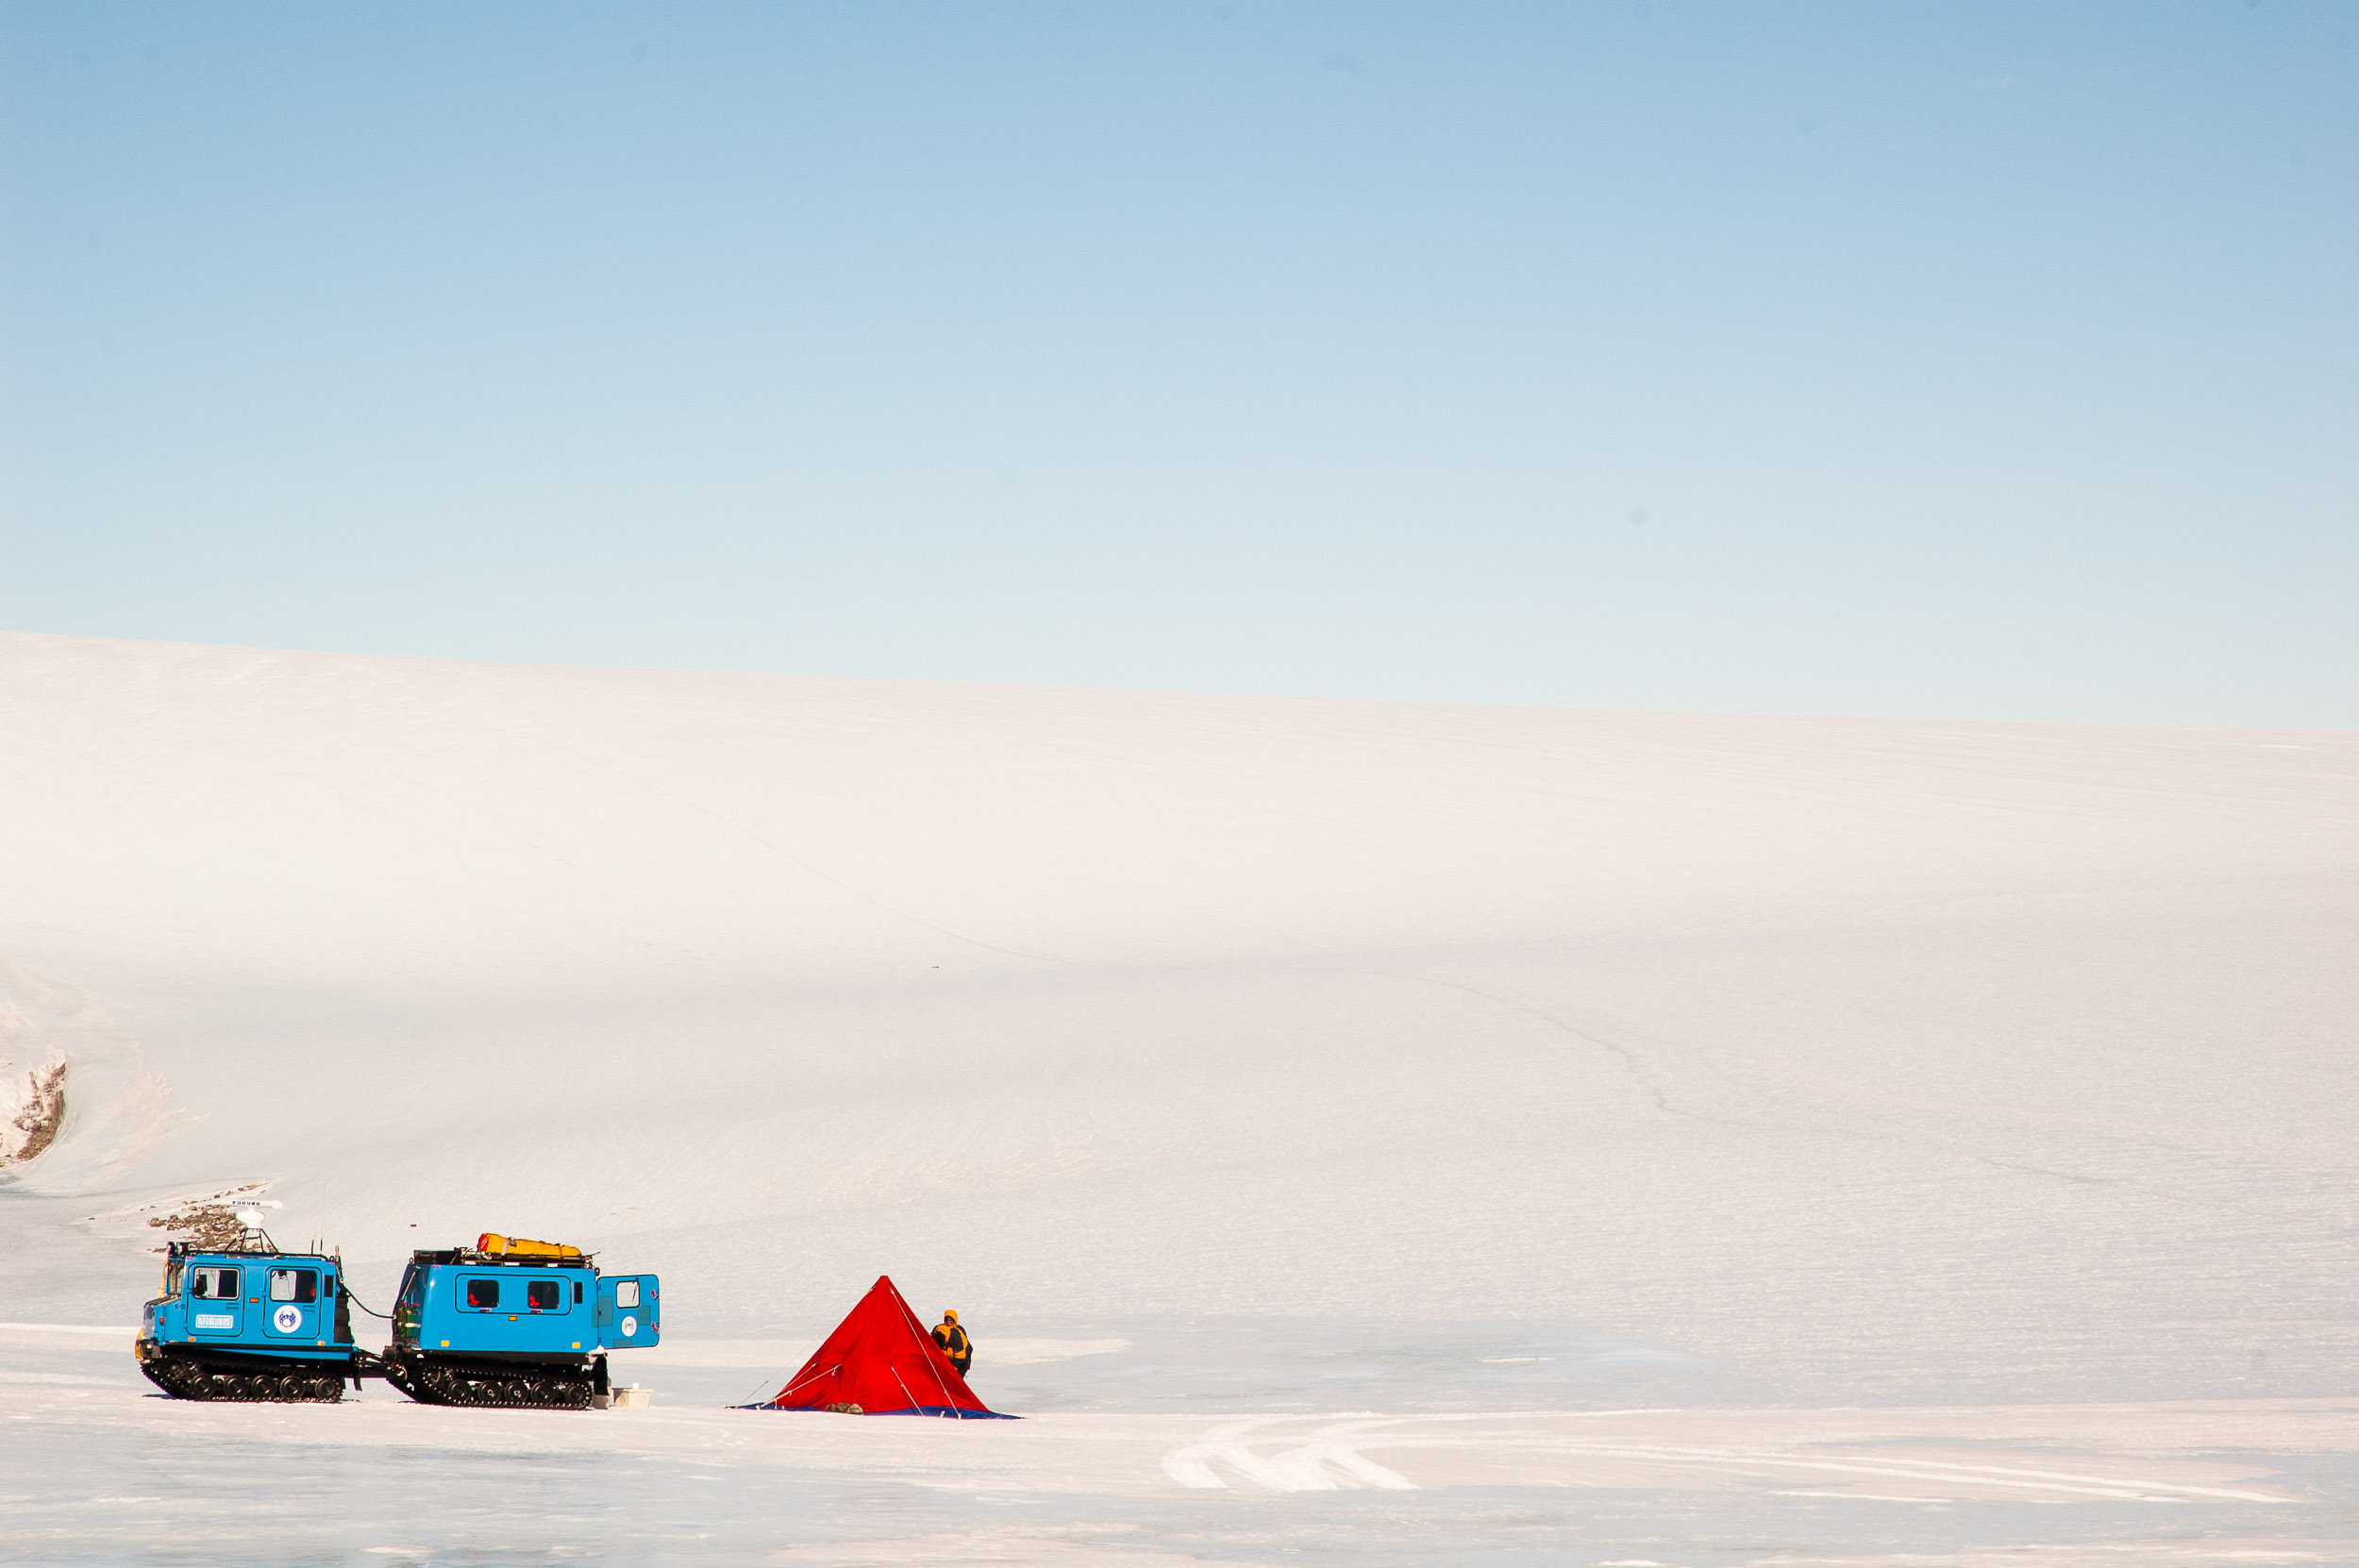 Camping in the Framnes Mountains, Antarctica. © www.thomaspickard.com